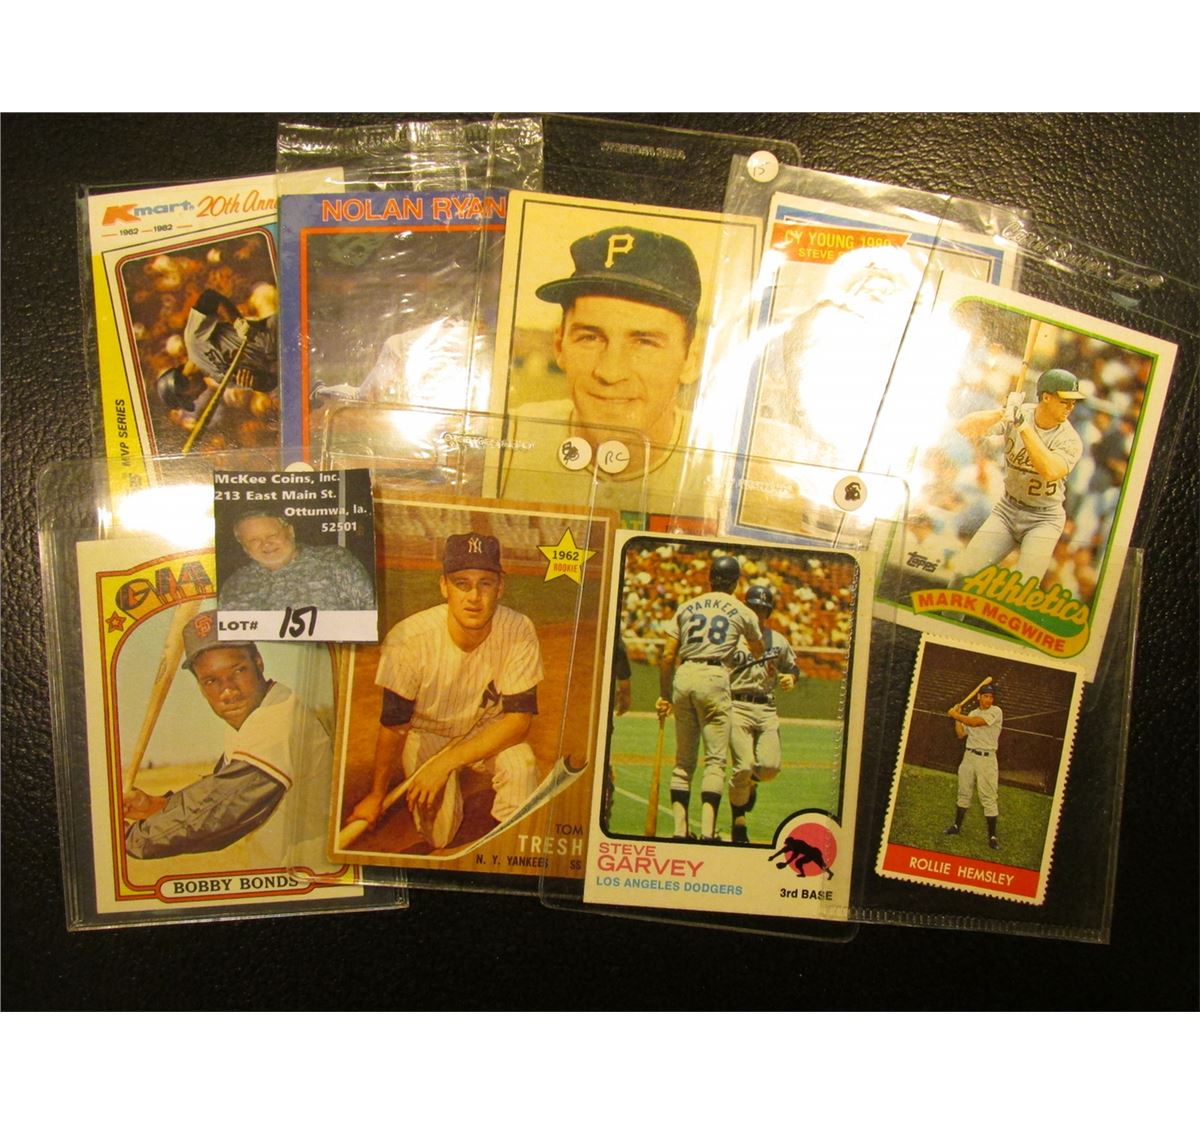 1982 Topps Steve Garvey Mvp Kmart 20th Anniversary Card With Original Autograph 10 Other All